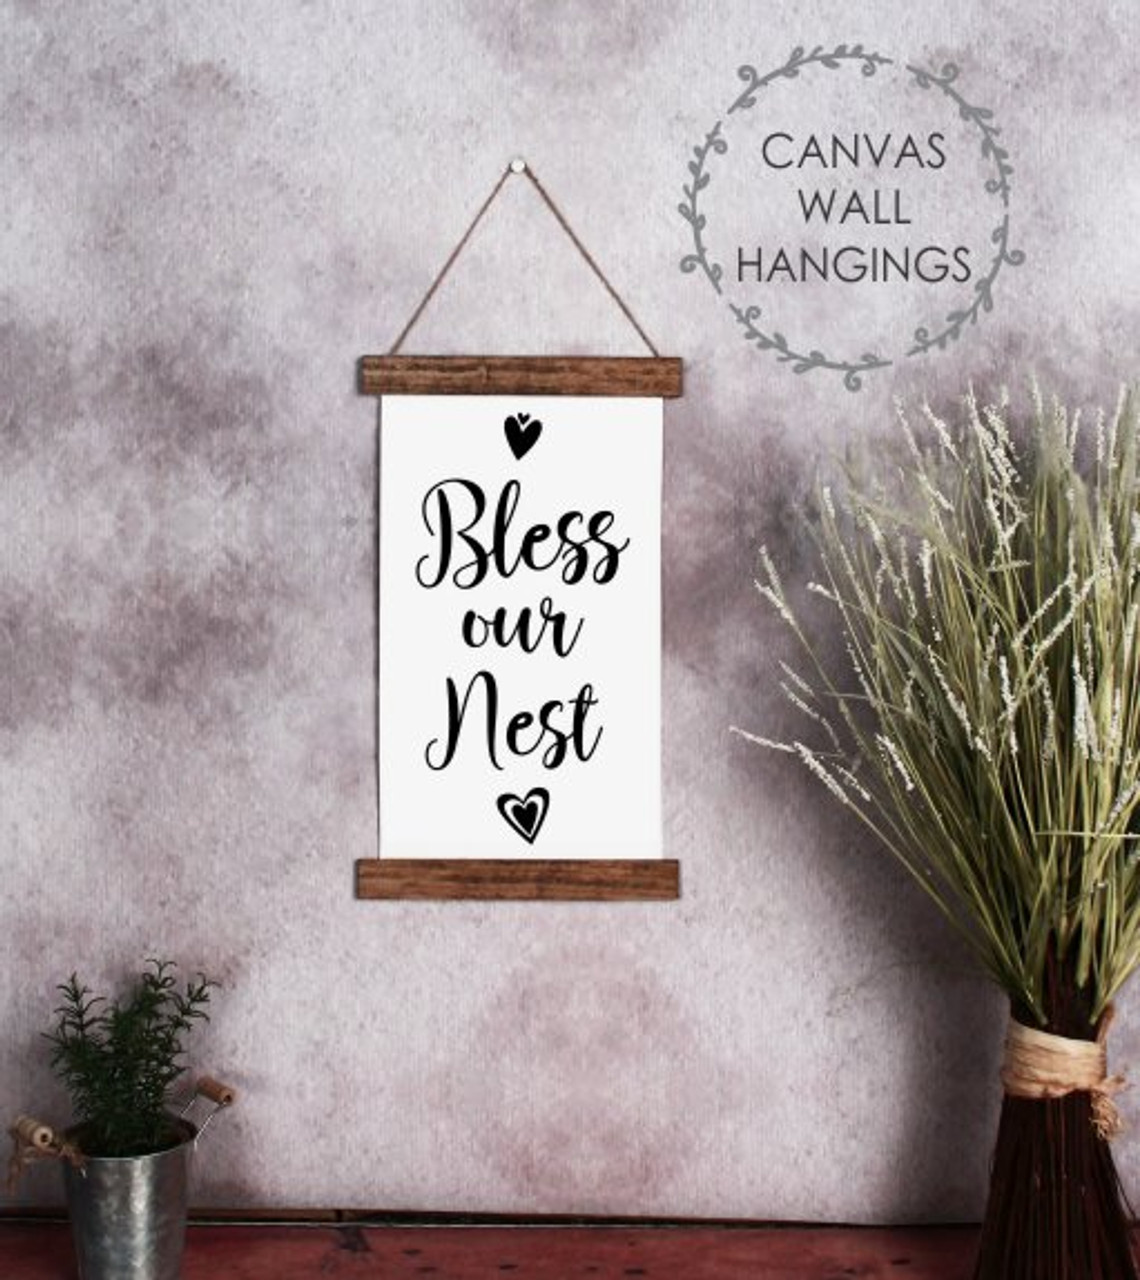 Wood Canvas Wall Hanging Bless Our Nest Farmhouse Wall Art Sign